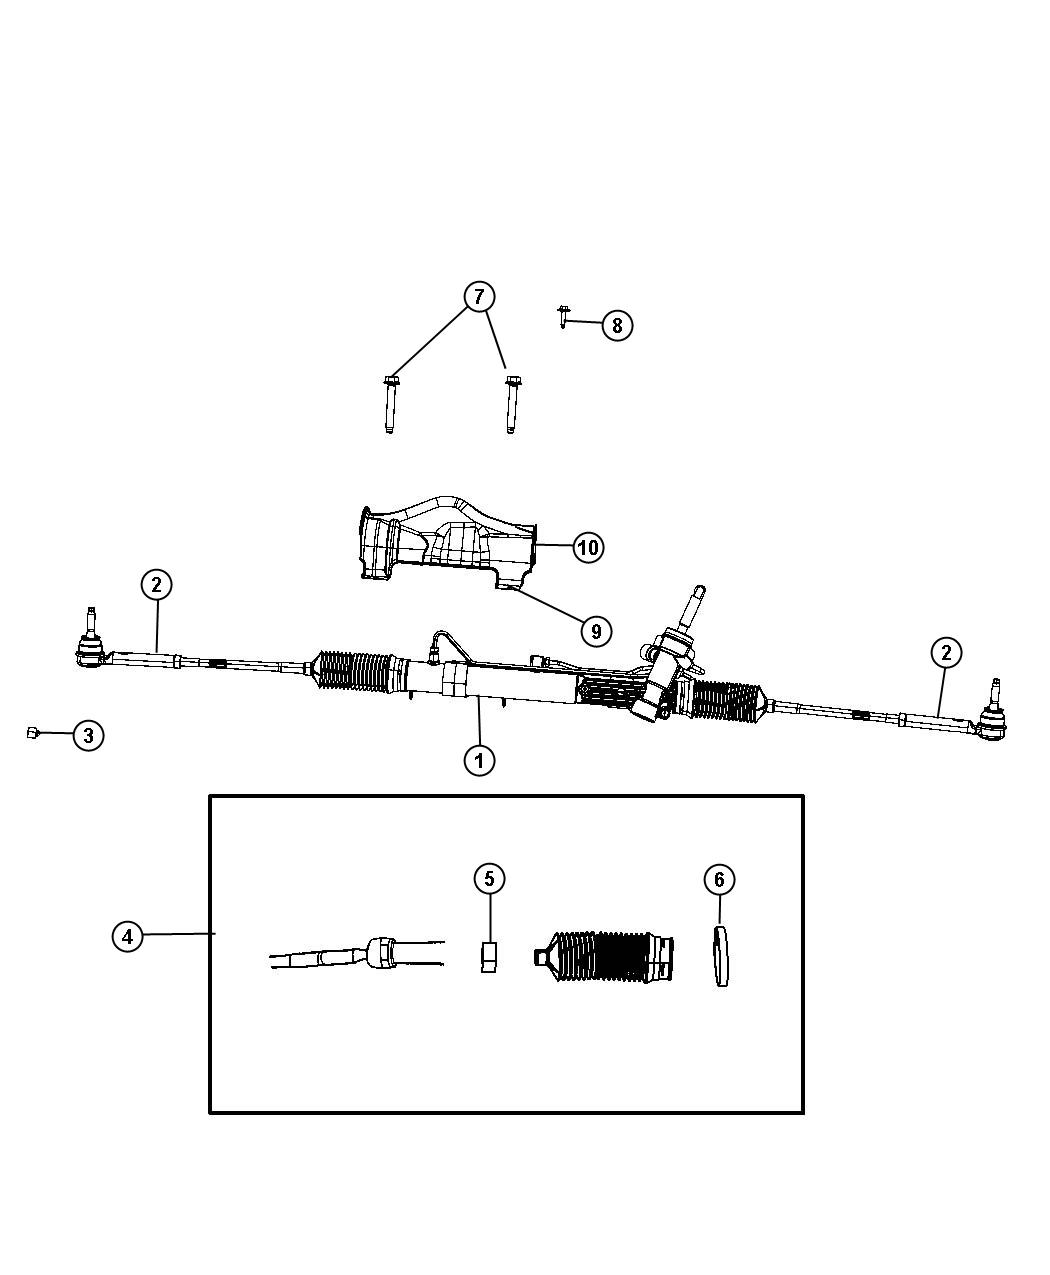 Dodge Grand Caravan Gear Used For Rack And Pinion